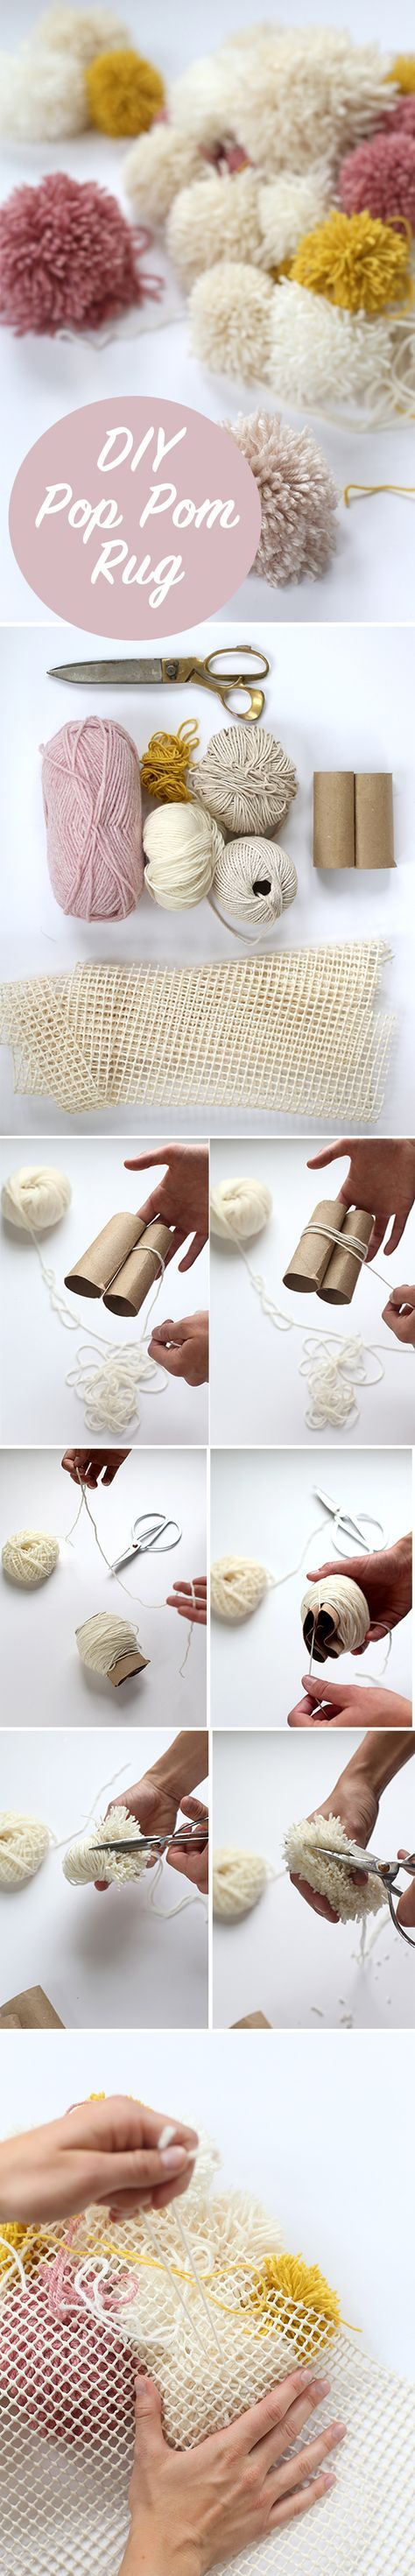 DIY Easy Pom Pom Rug   Cozy DIY Projects to Keep You Warm This Winter